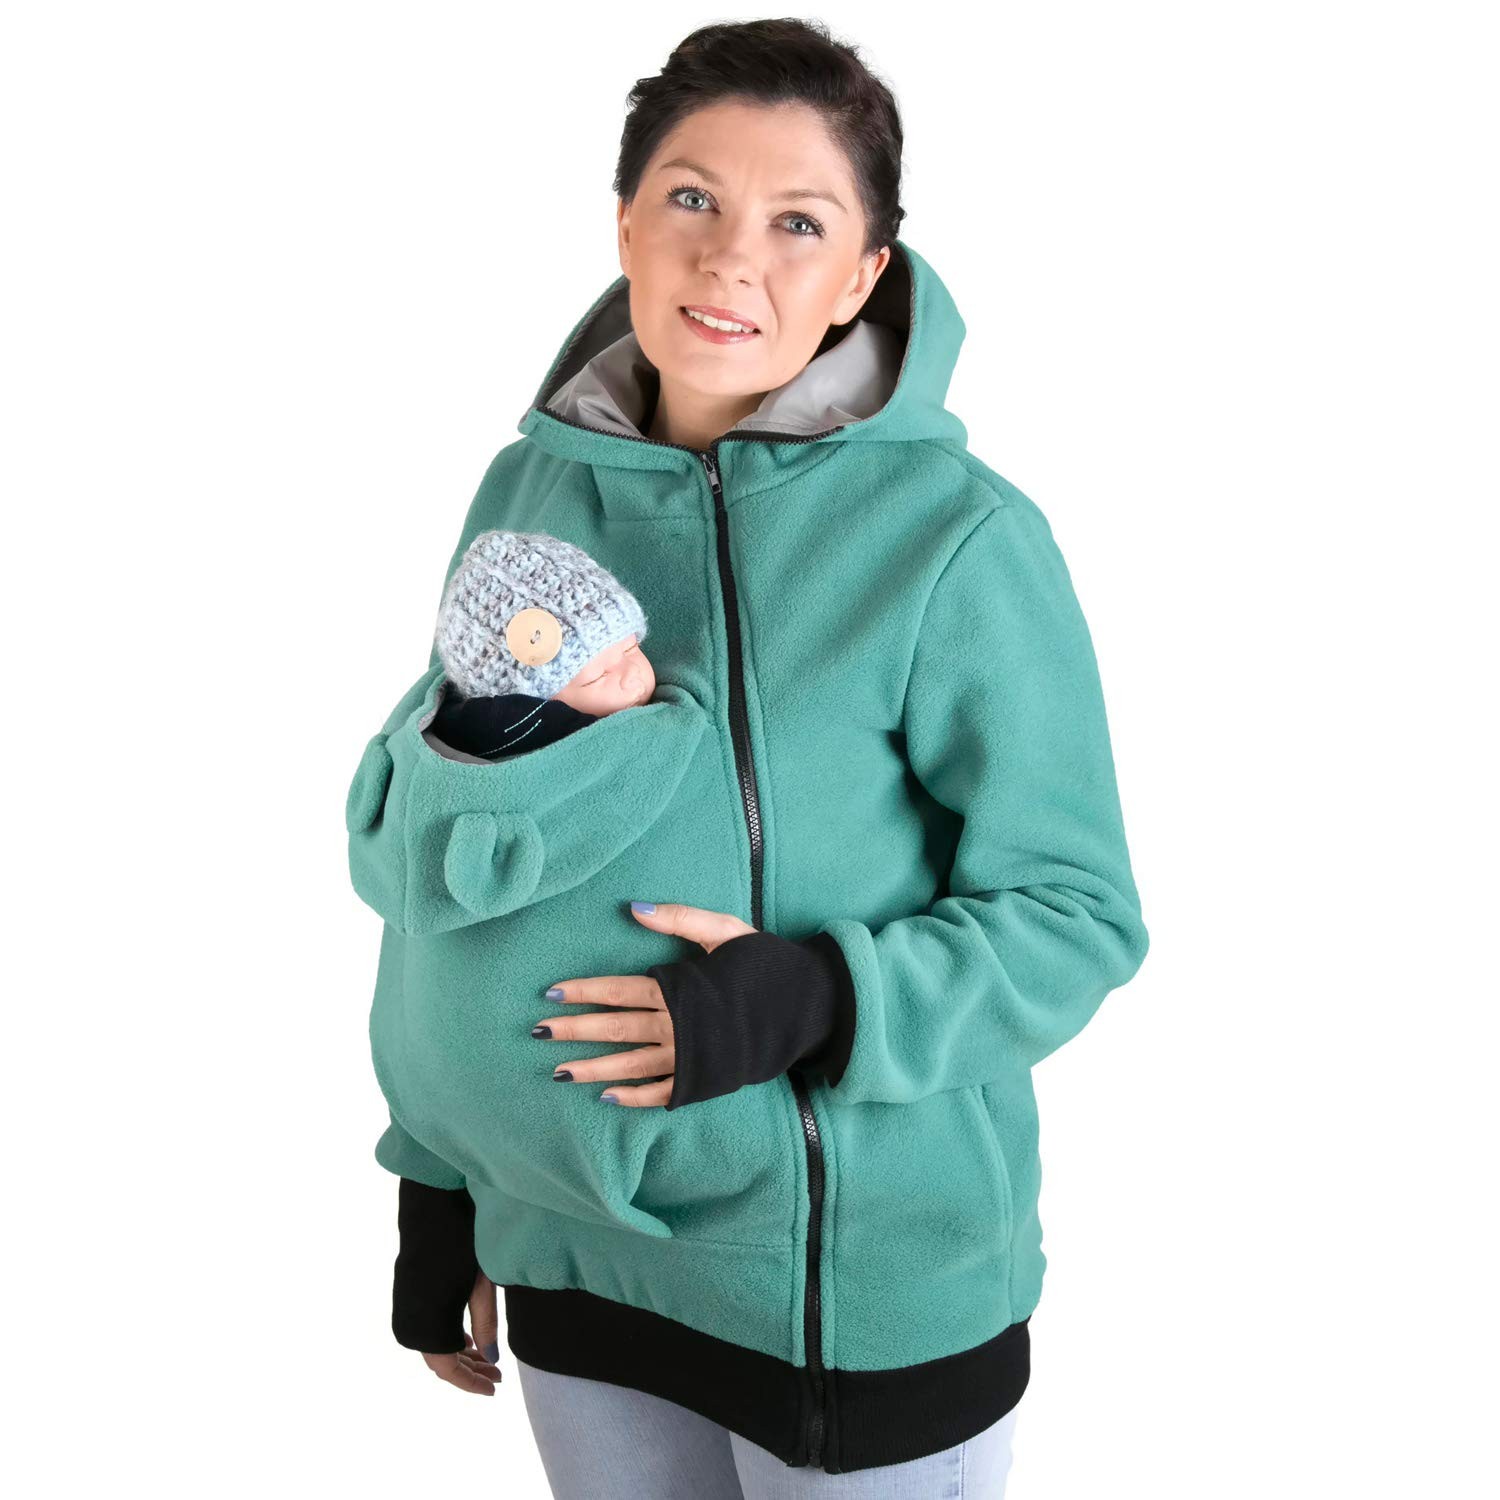 FUN2BEMUM Little Bear Hoodie//Pullover for Baby Carriers NP02//A Turq//Grey